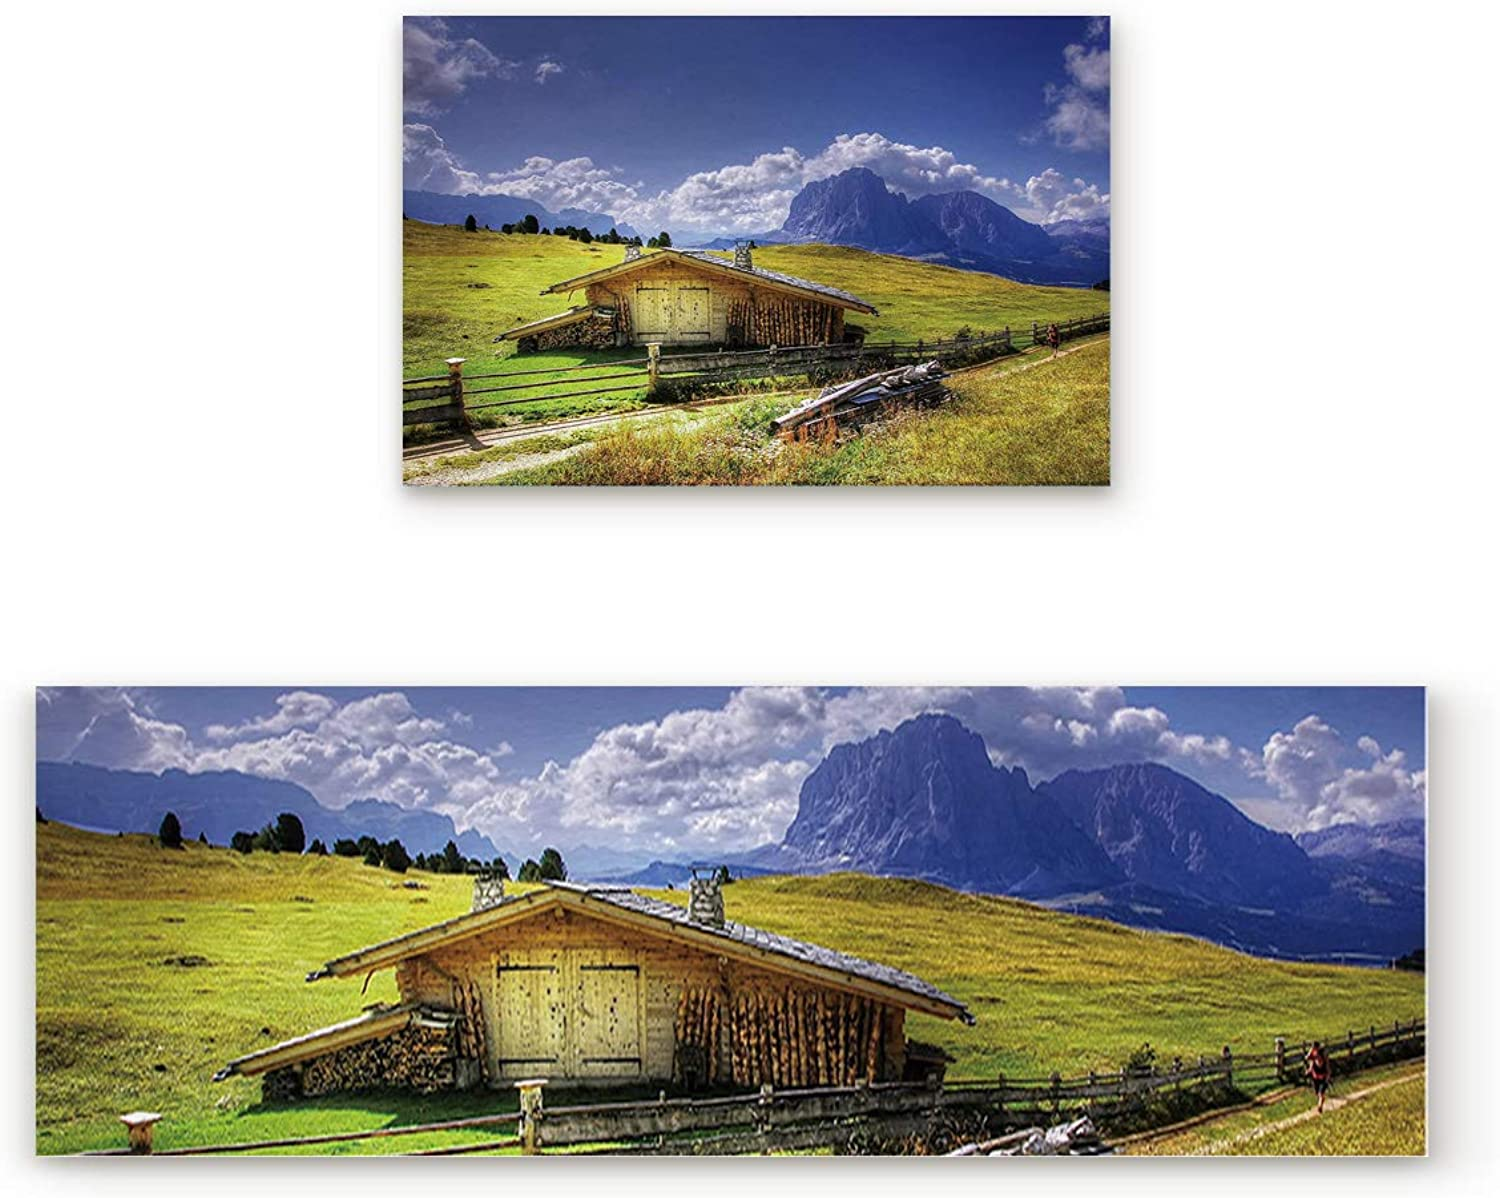 Kitchen Rugs, Non Slip Mat Kitchen Rug Set 2 Piece Grass on The Cabin, Pedestrians, Mountains, bluee Sky, White Clouds Scenery 23.6 x35.4 +23.6 x70.9